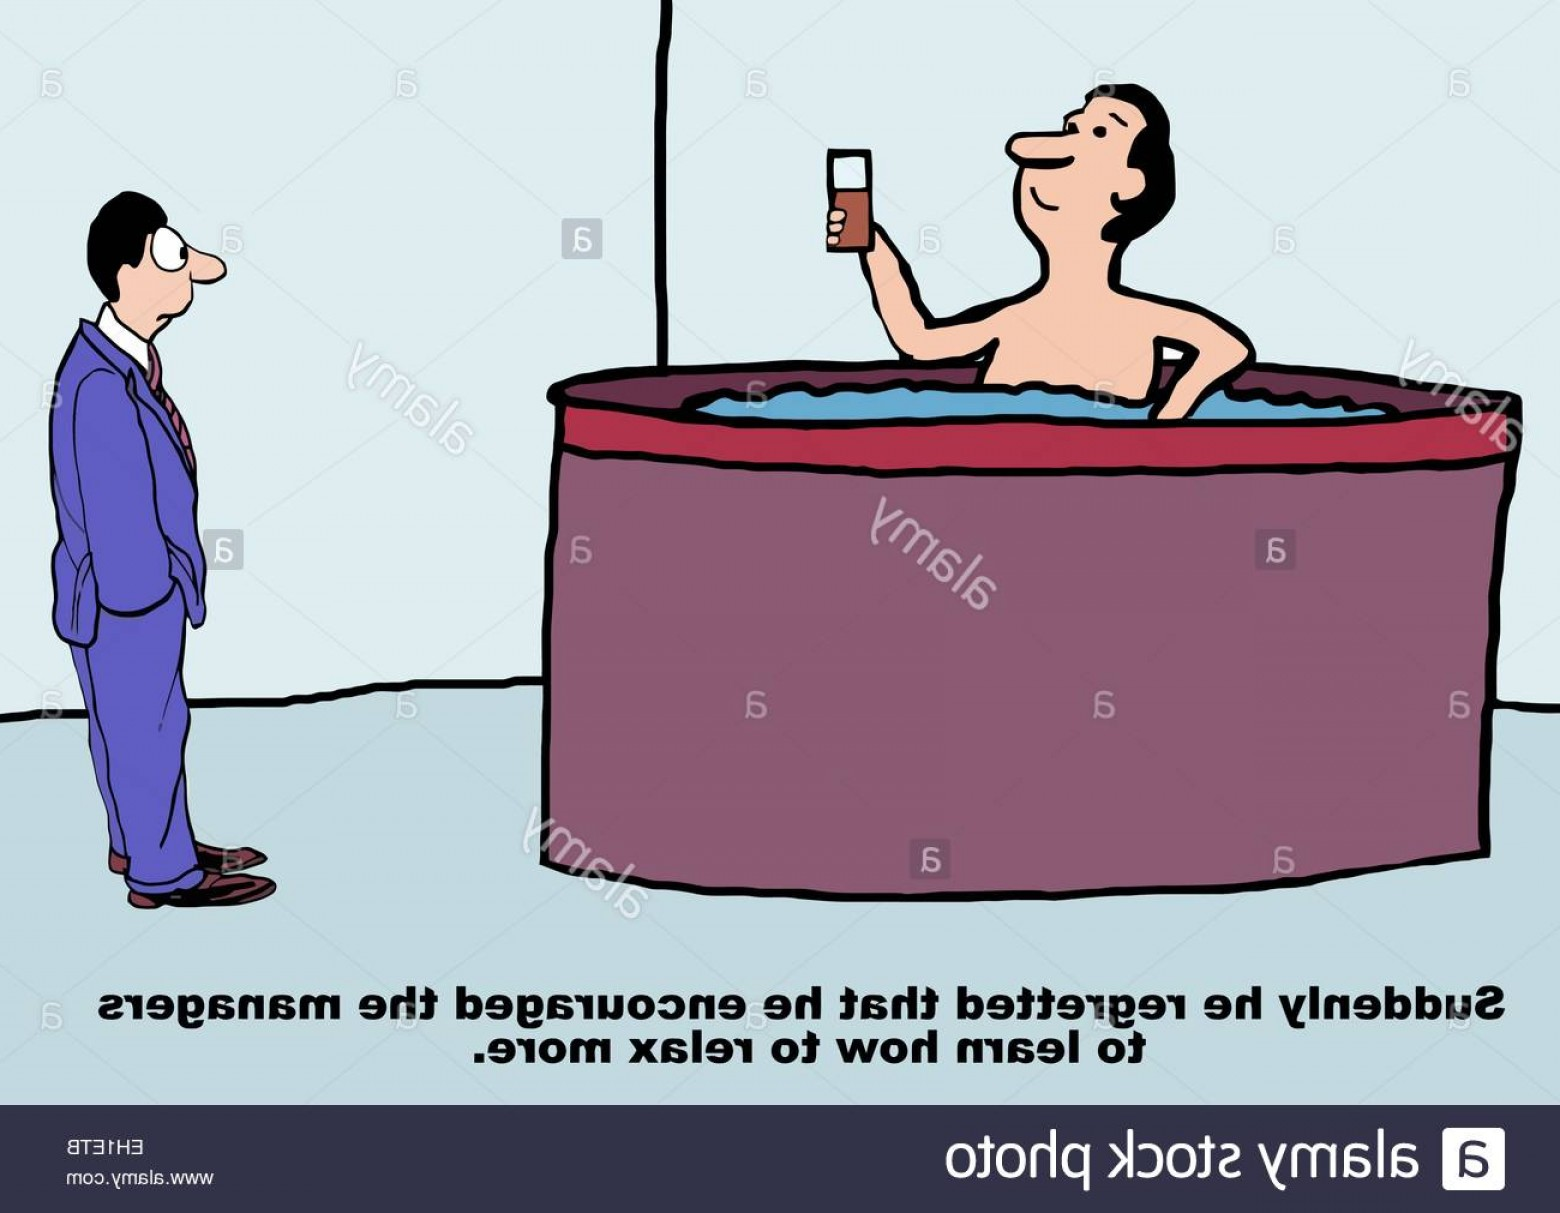 Vector Relaxing Hot Tub: Stock Photo Cartoon Of Business Manager In Hot Tub Business Boss Thinks Suddenly